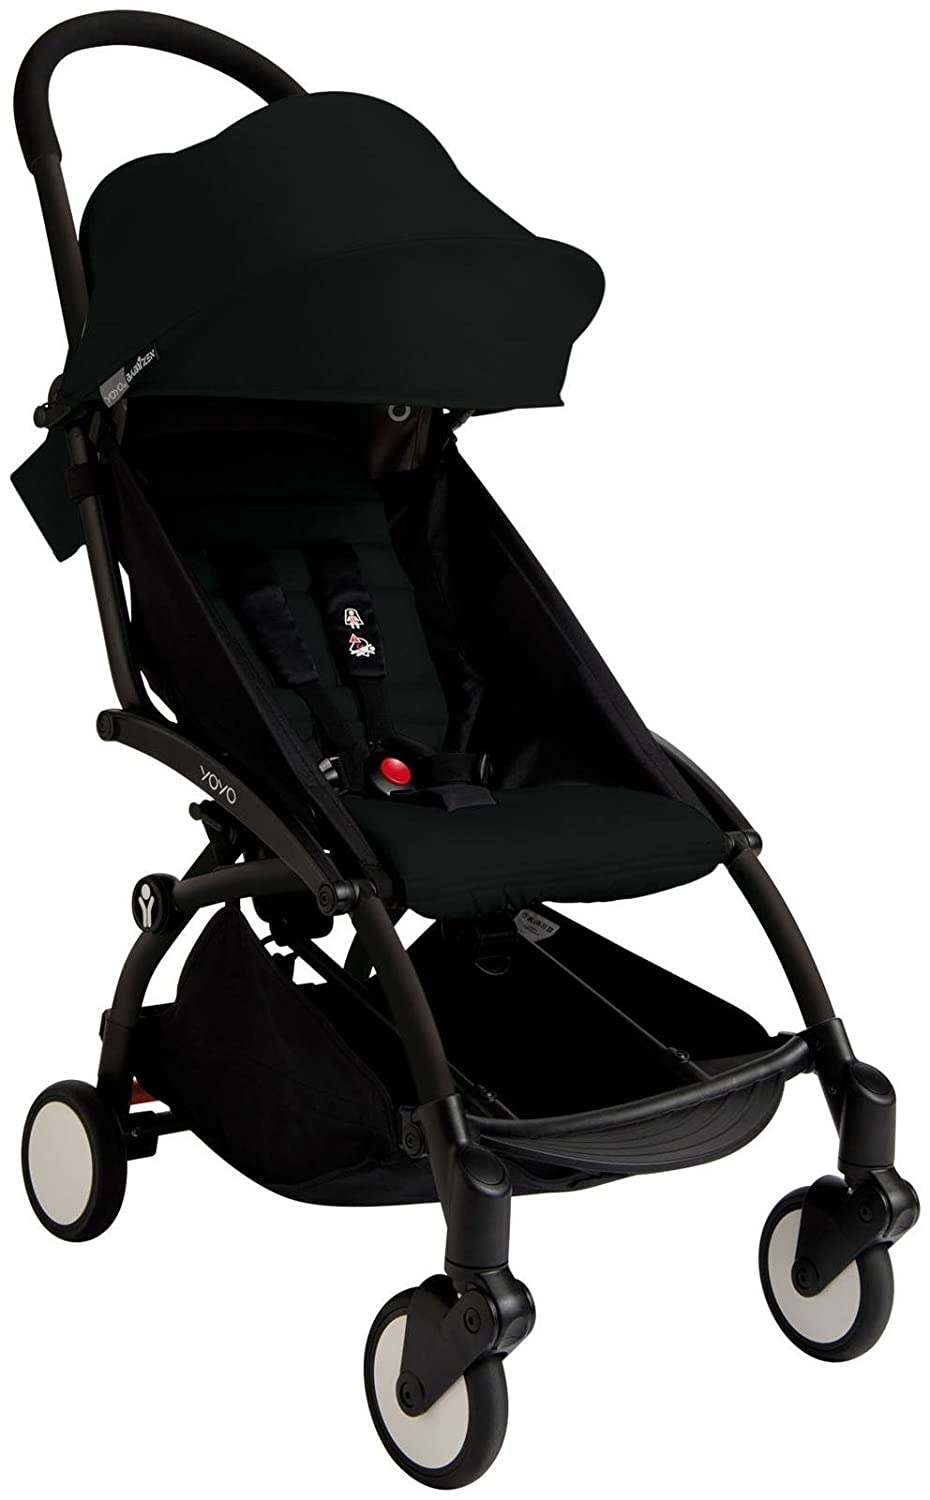 61V5a4VsfYL. SL1500 15 Best Umbrella Strollers for 2021 [Picked by Parents]